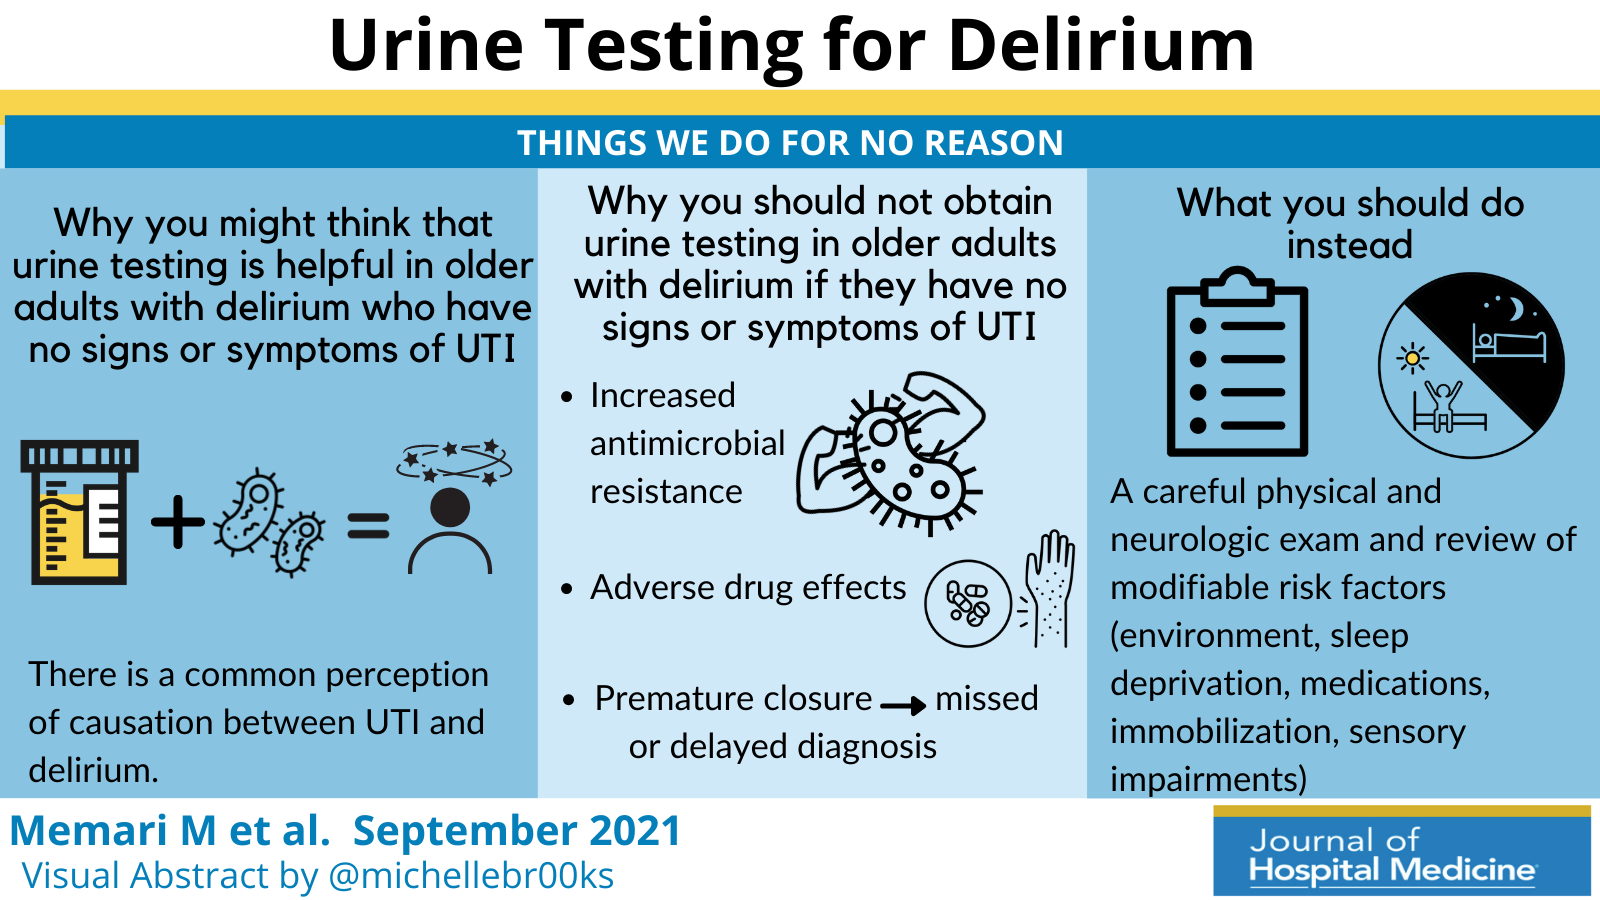 Things We Do for No Reason™: Obtaining Urine Testing in Older Adults With Delirium Without Signs or Symptoms of Urinary Tract Infection